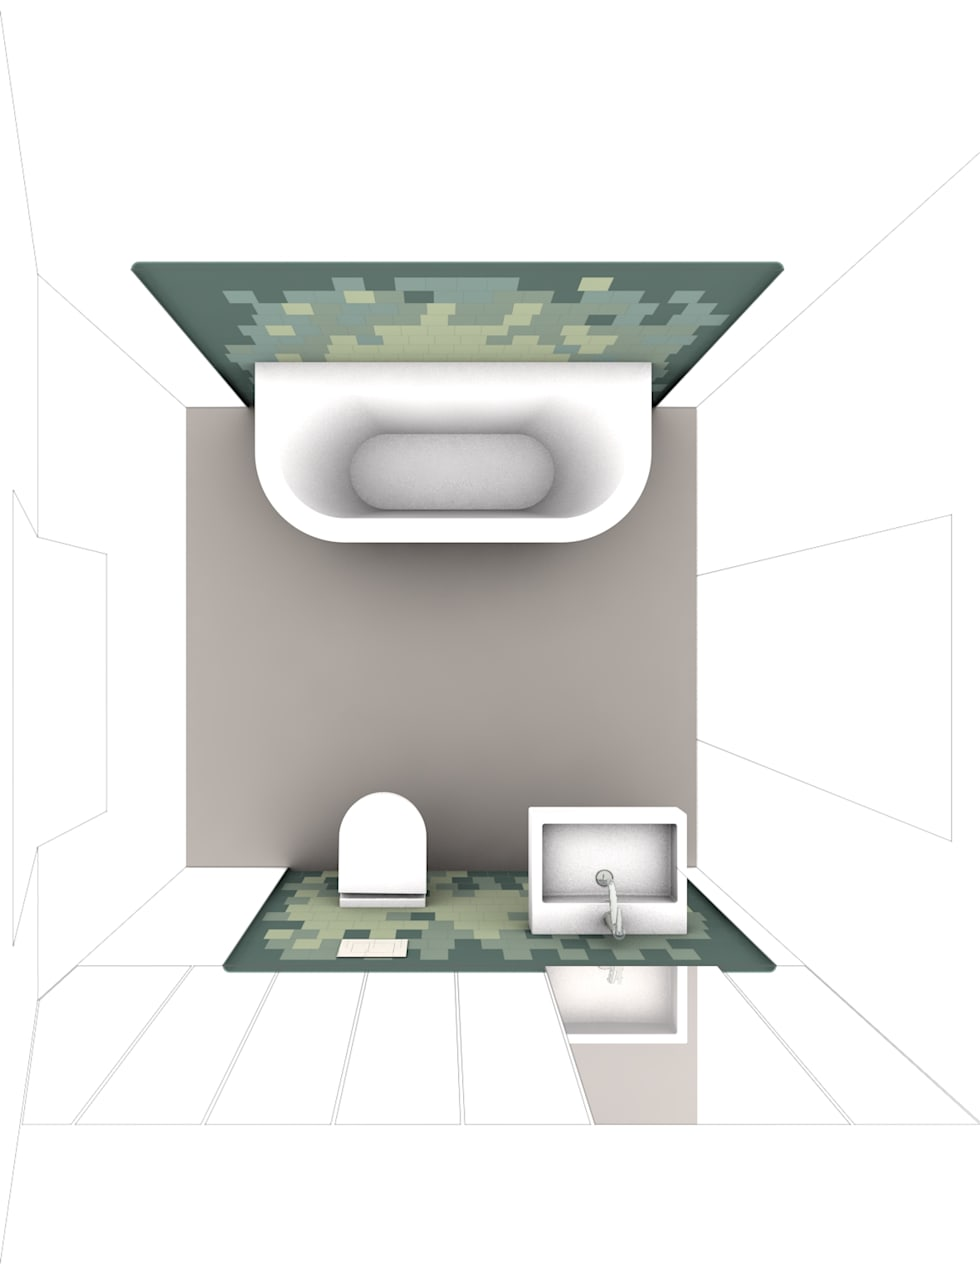 2 stylish bathroom with plans and all the details you need to revamp yours